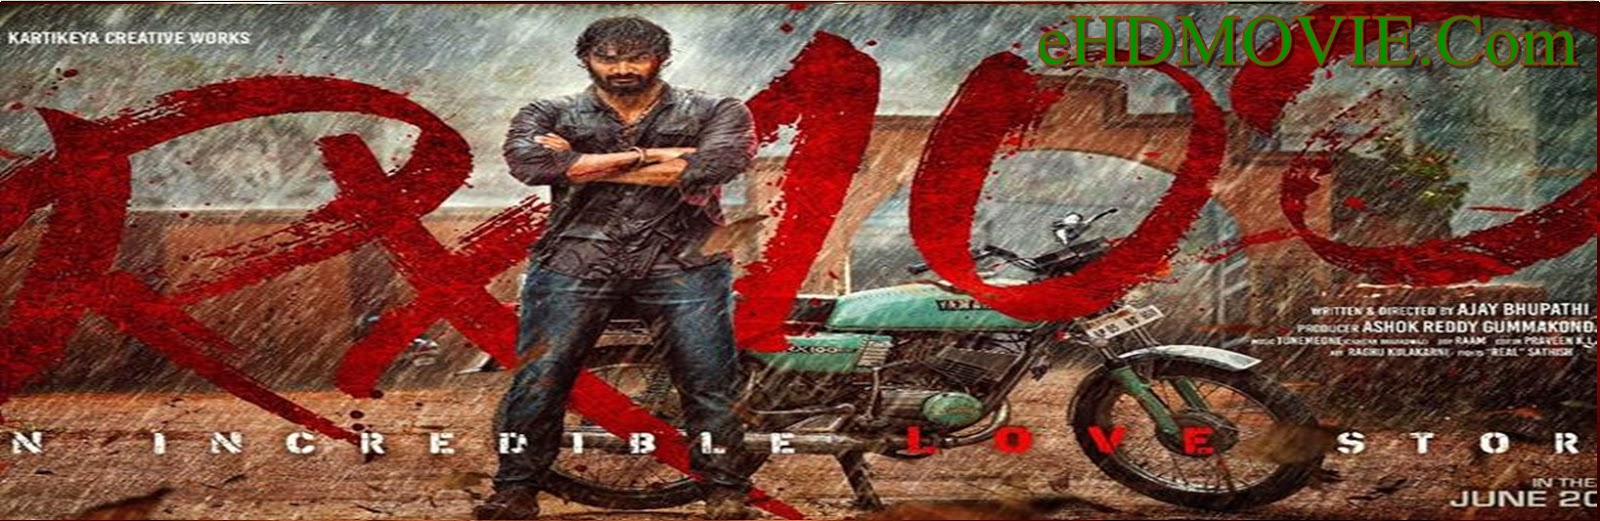 Rx 100 2018 Full Movie Telugu 720p - 480p ORG WEBRip 400MB - 900MB ESubs Free Download